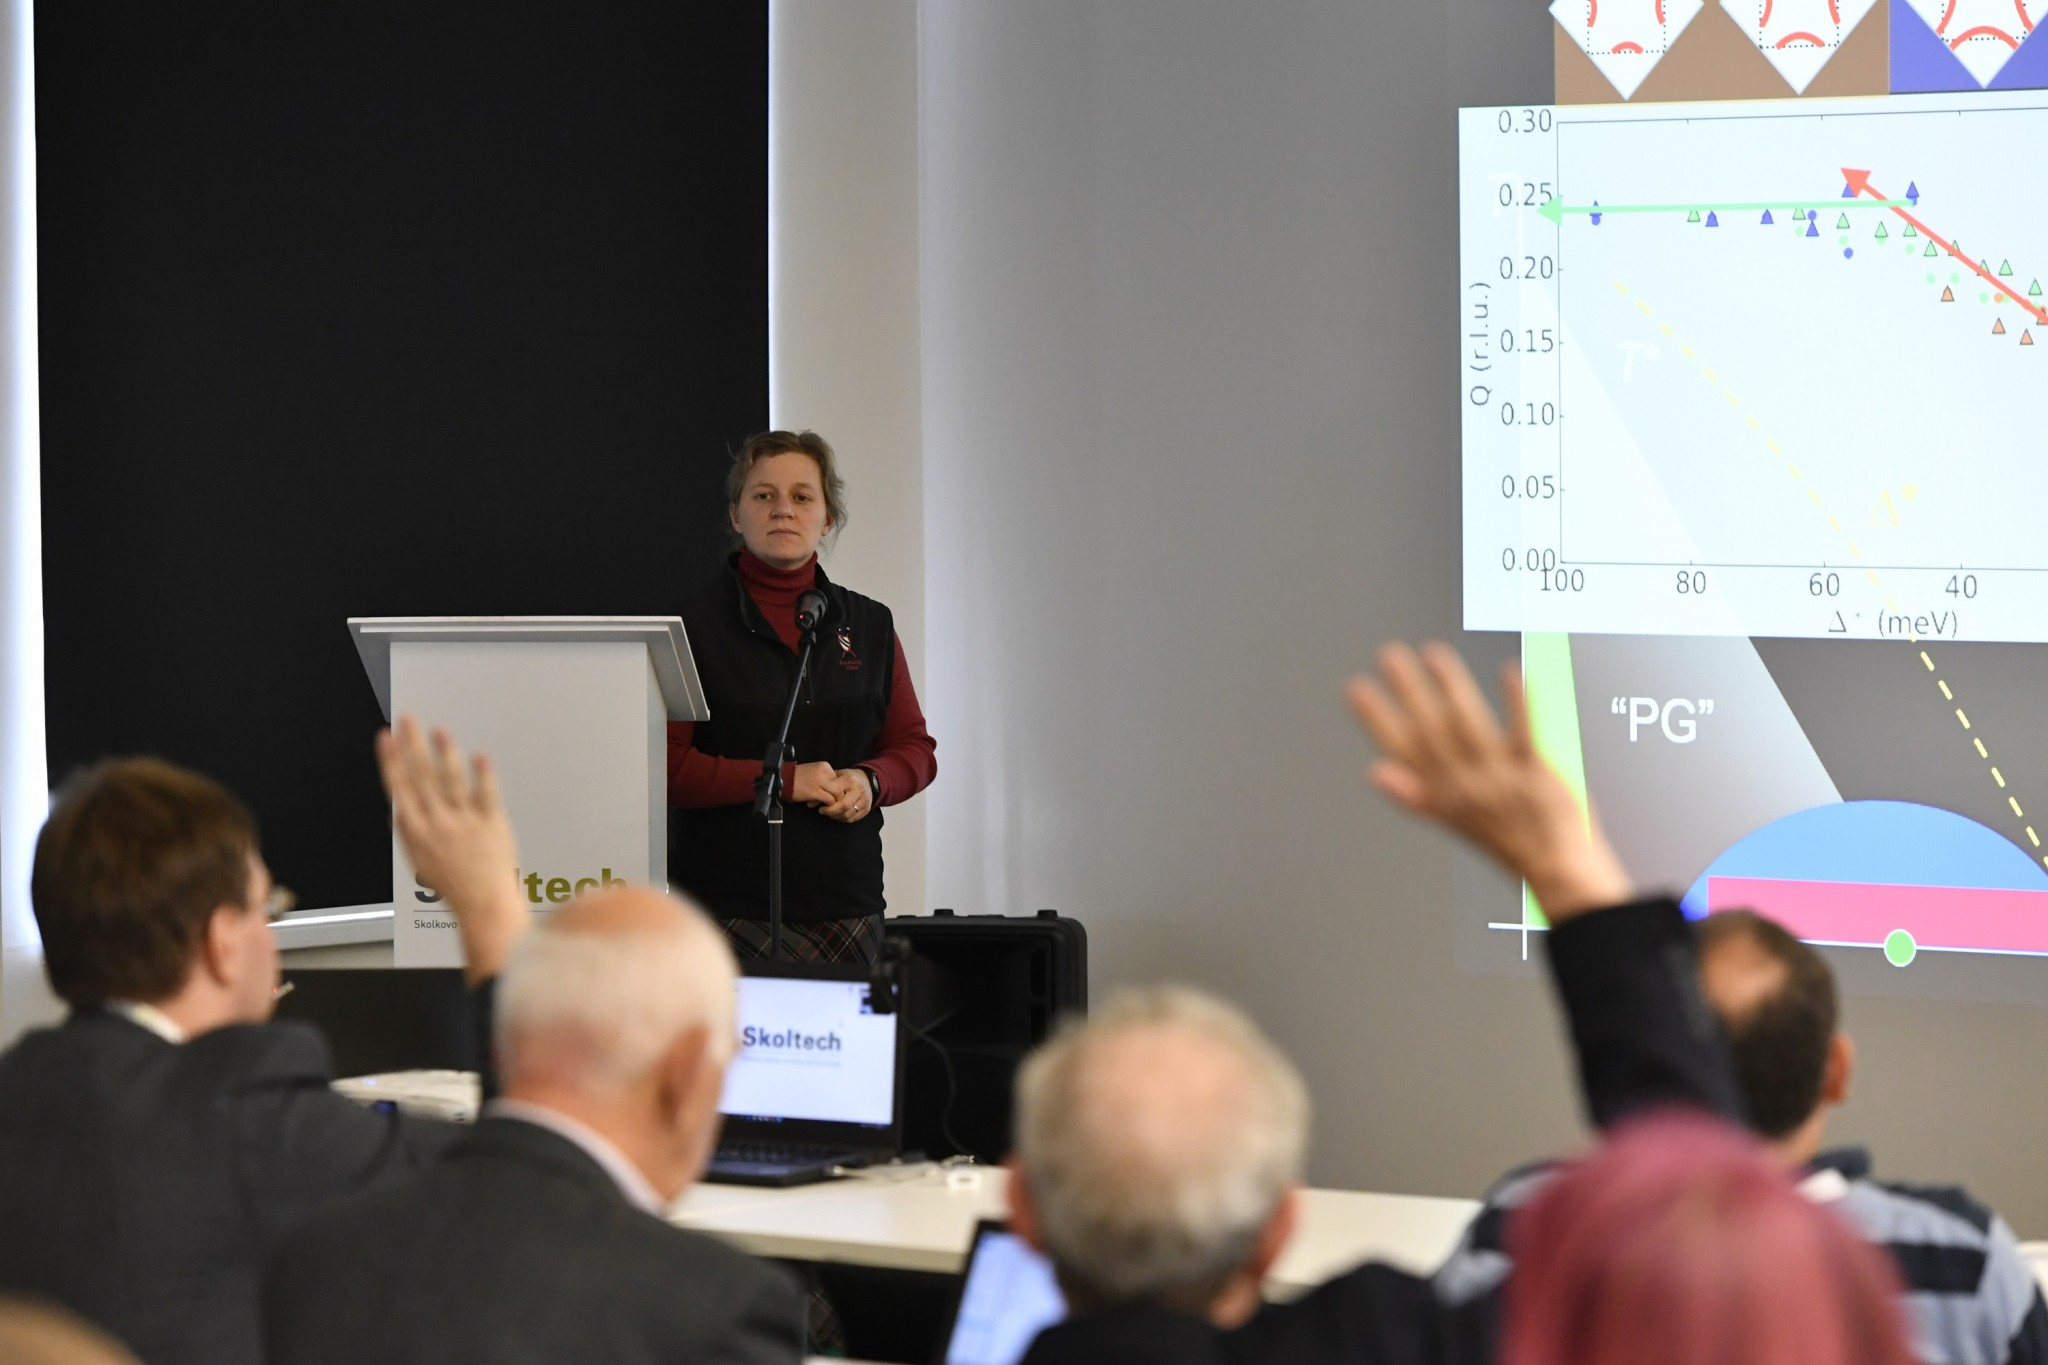 Harvard Professor Jenny Hoffman taking questions after her talk at the symposium. Photo: Skoltech.